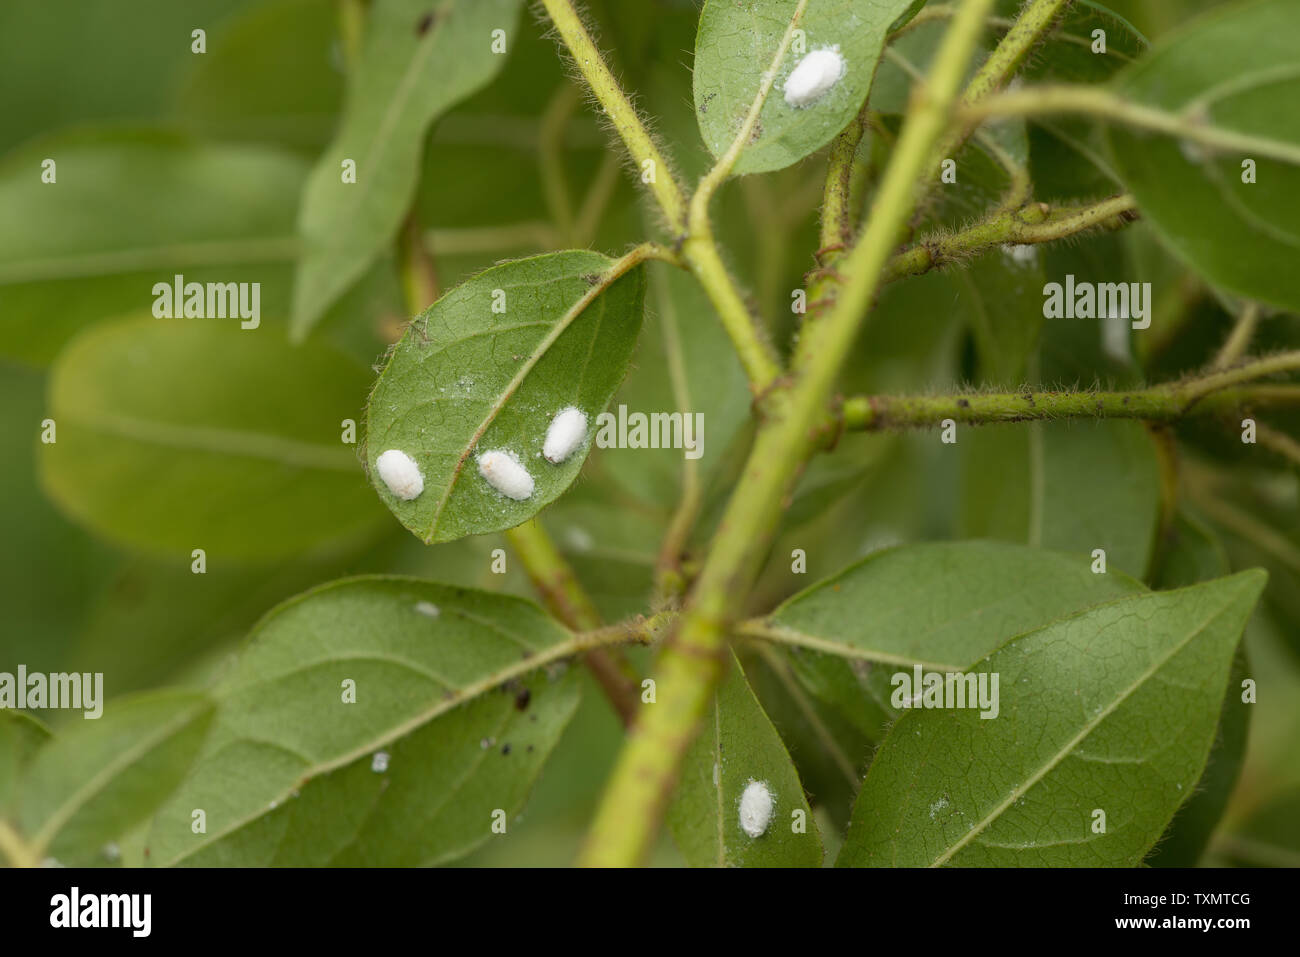 Woolly aphid , scale insect, Eriosoma spp on underside of Viburnum tinus leaves, start of infestation Stock Photo